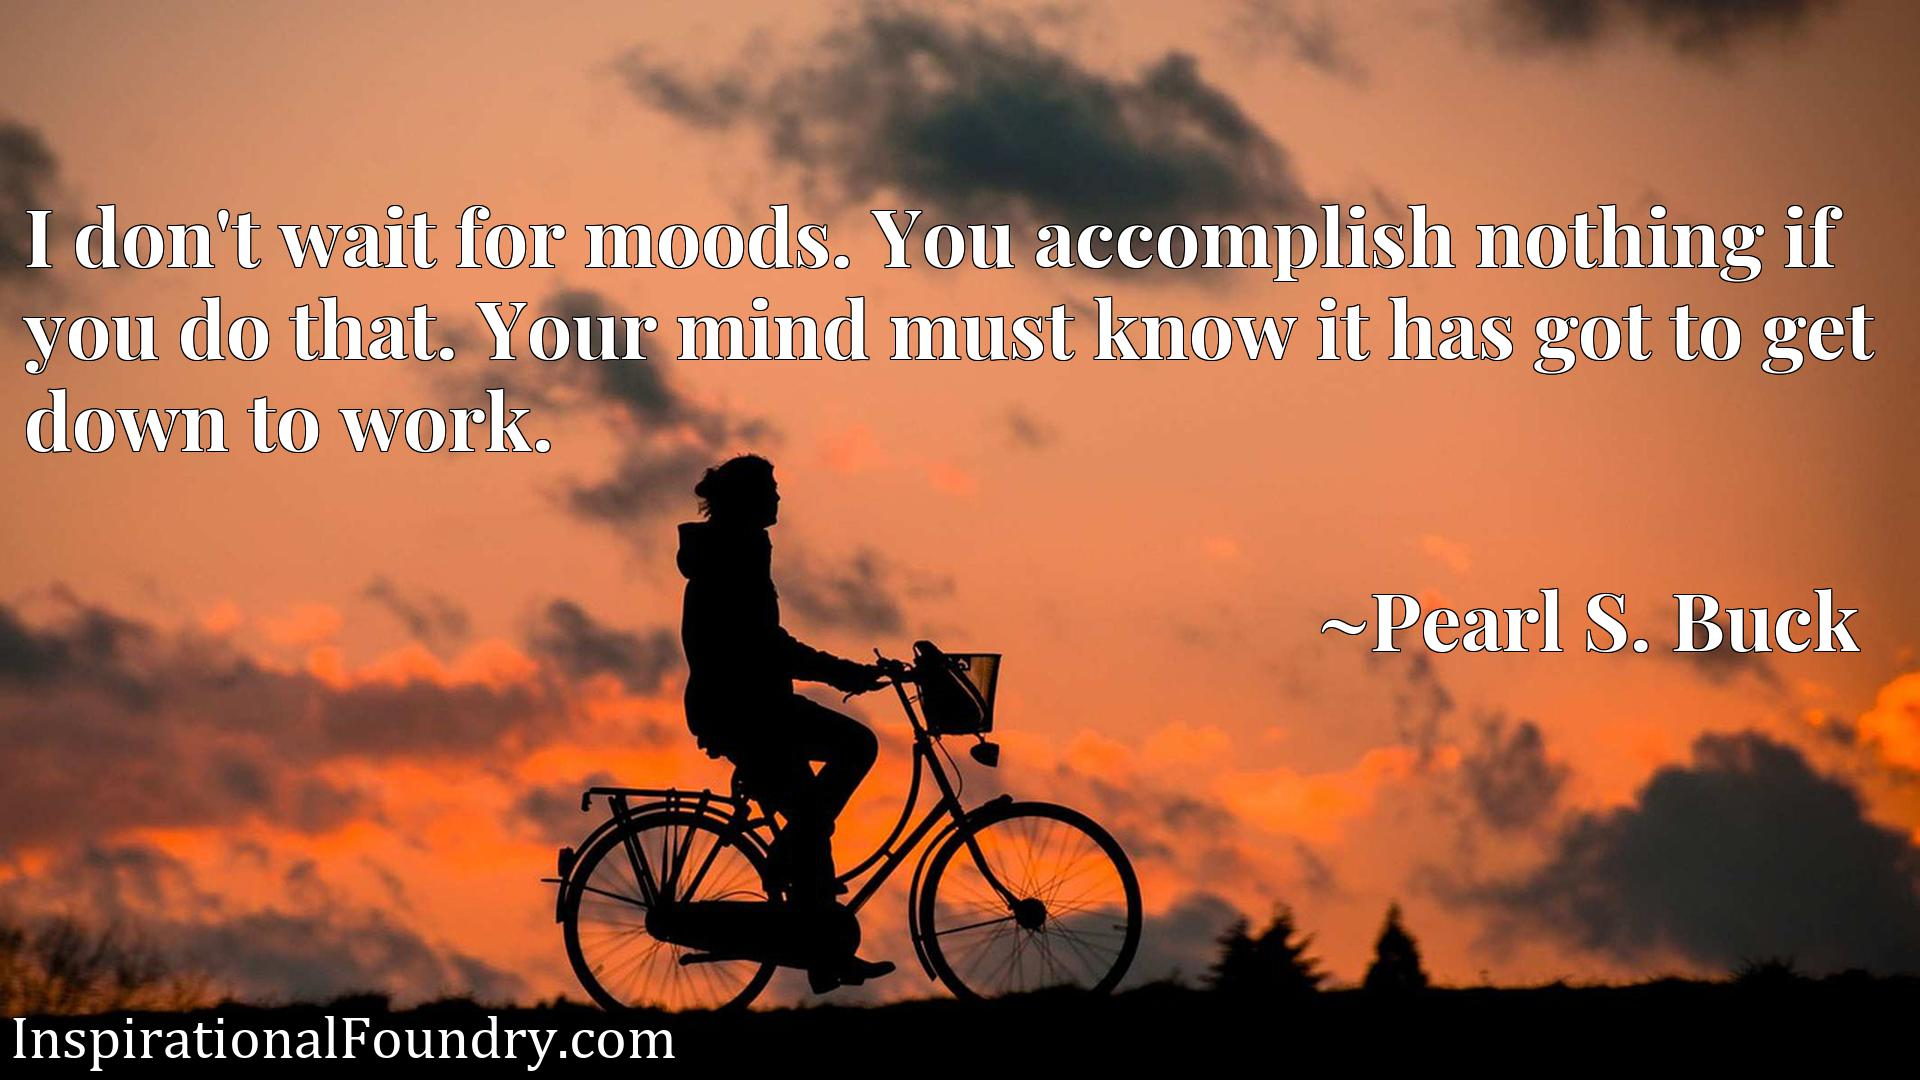 Quote Picture :I don't wait for moods. You accomplish nothing if you do that. Your mind must know it has got to get down to work.